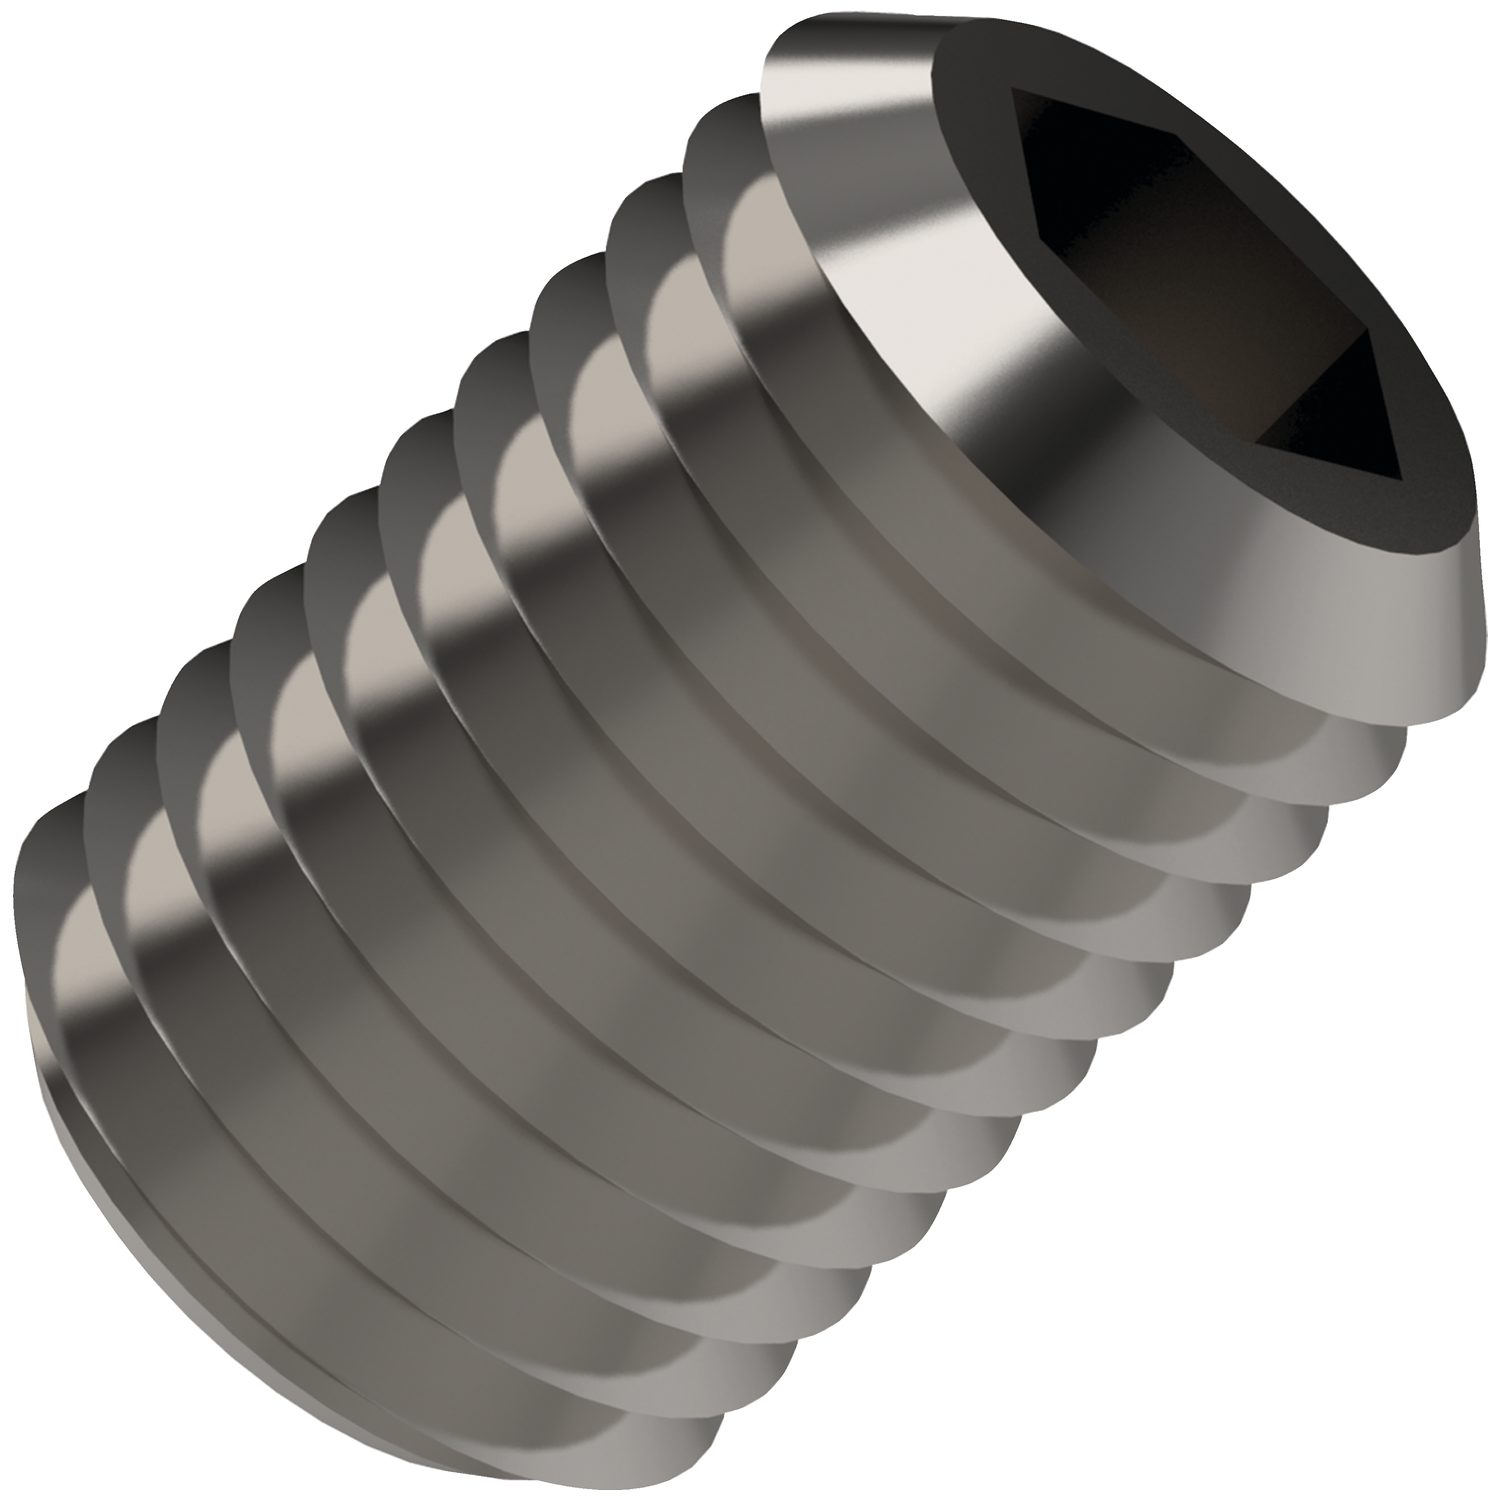 P0272 - Socket Set Screws Flat Point